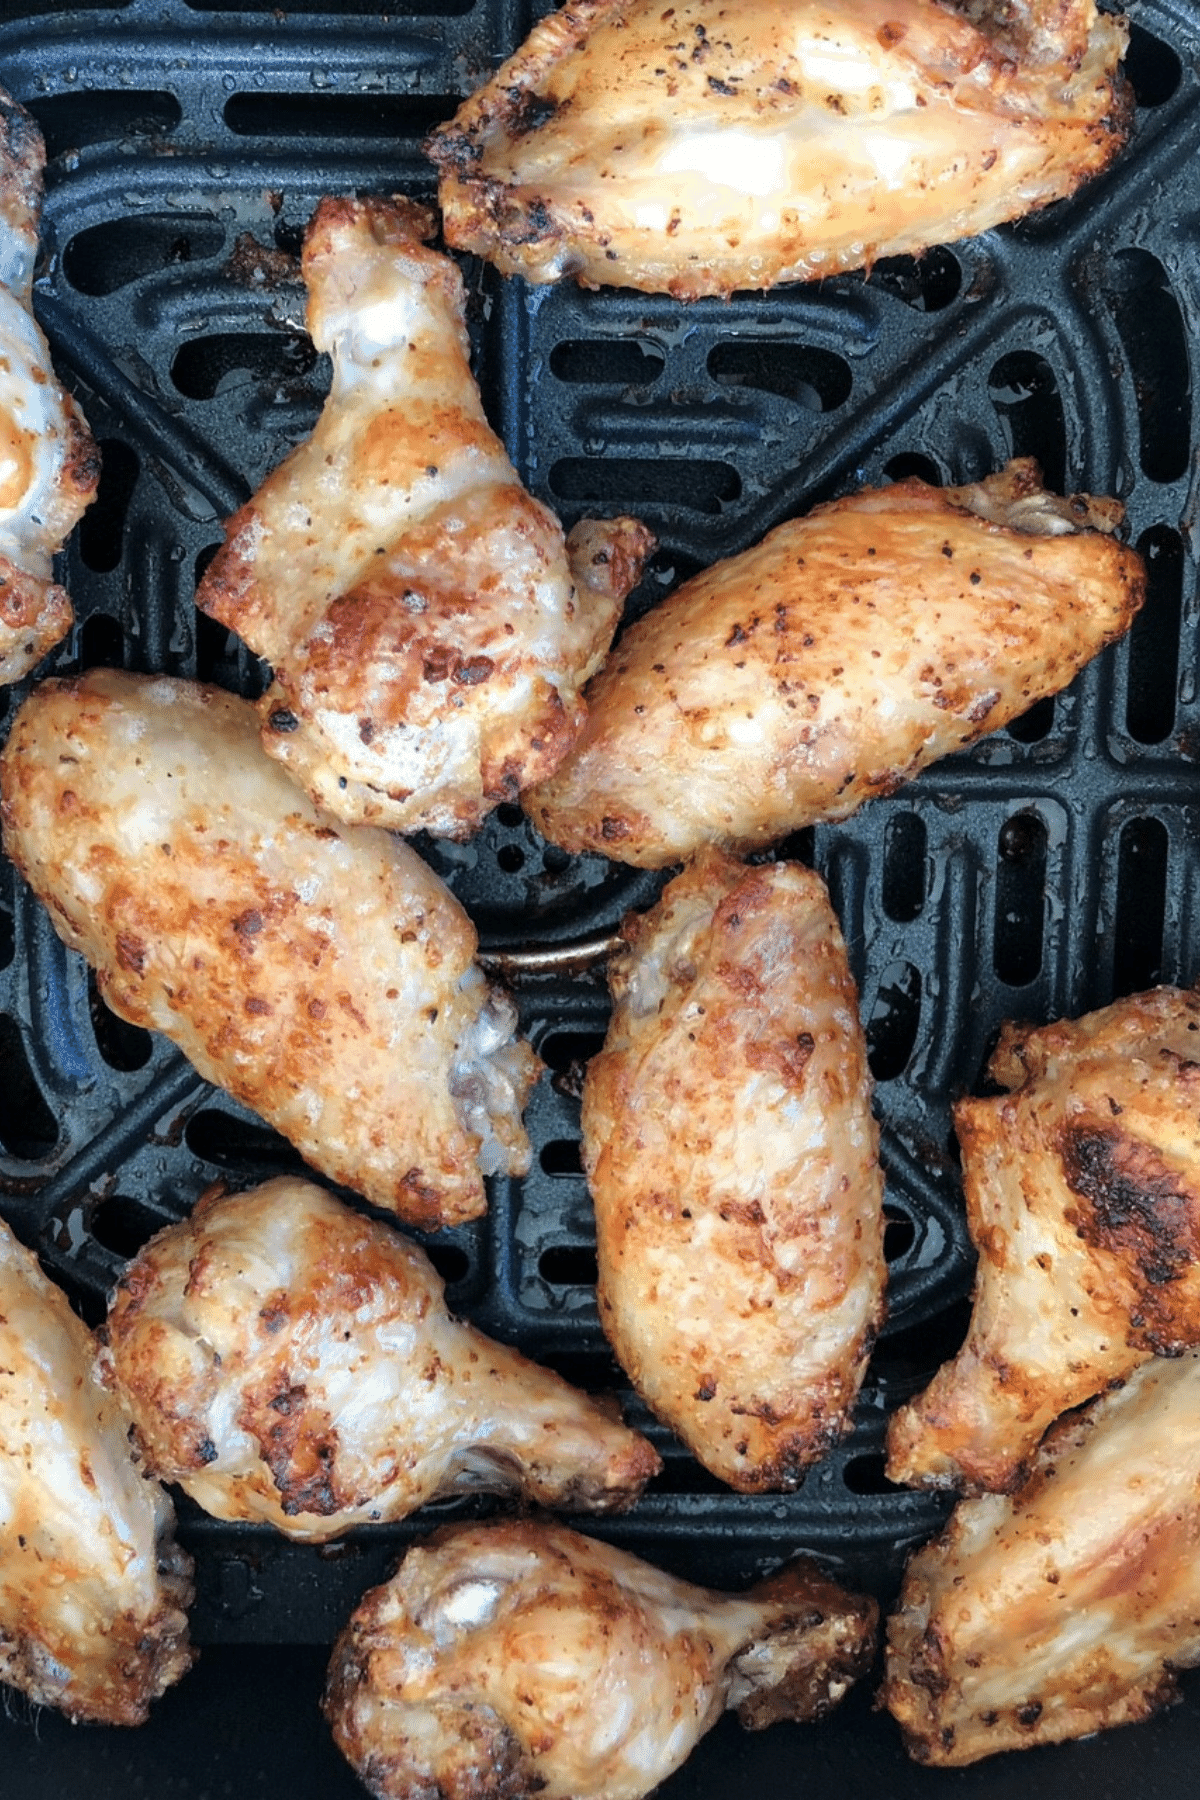 Air fryer wings after they are cooked for 25 minutes